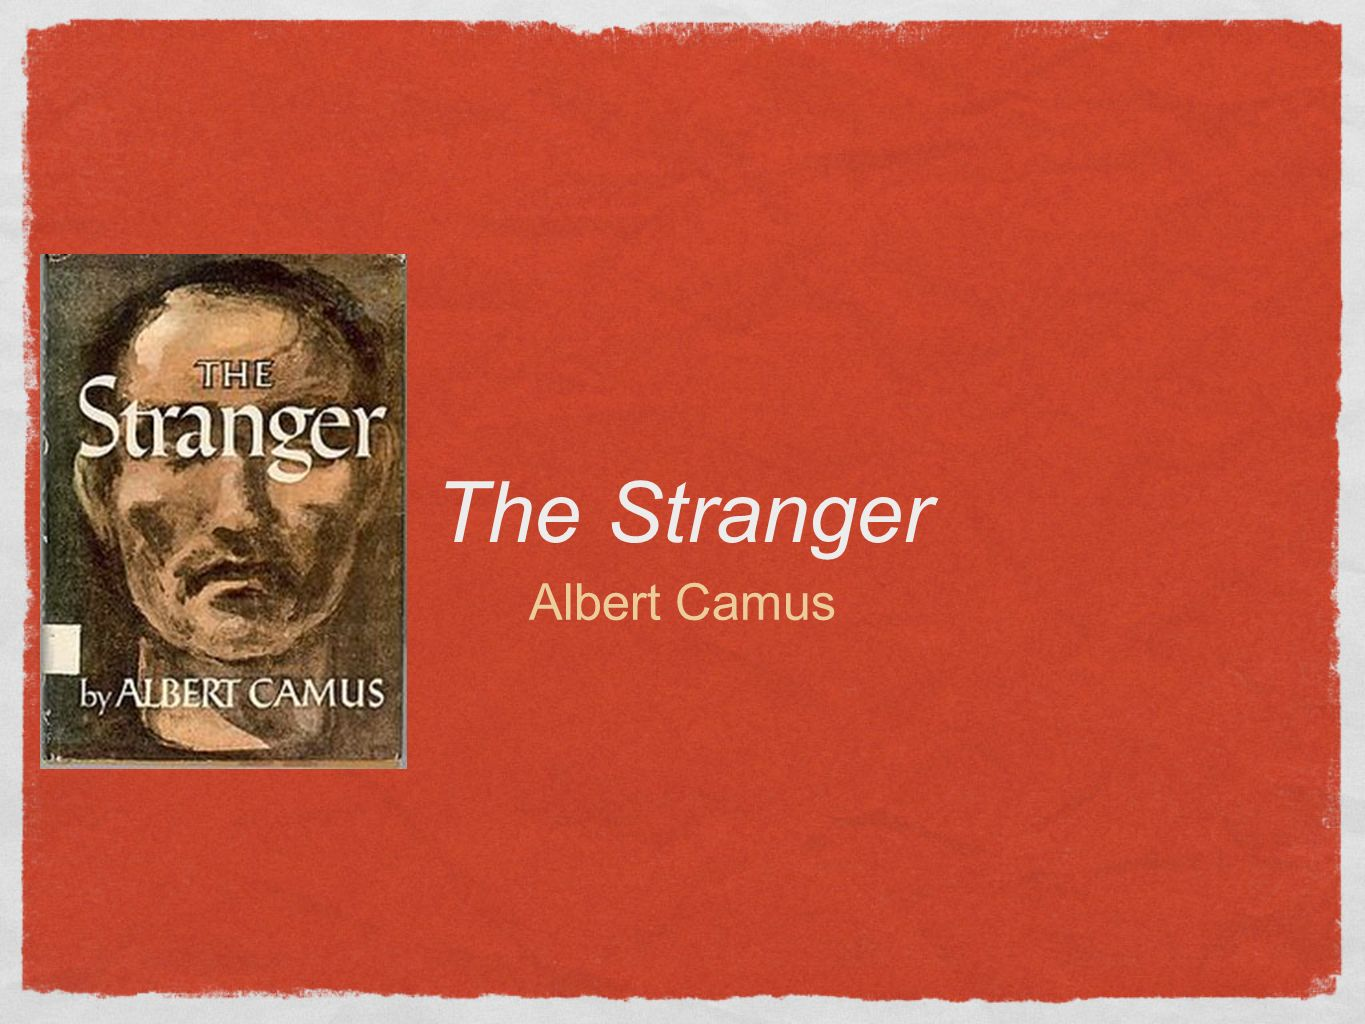 the theme of rebellion in the outsider by albert camus The camus investigation alice kaplan's new book, looking for 'the stranger,' explores albert camus's fraught relationship with his algerian homeland.